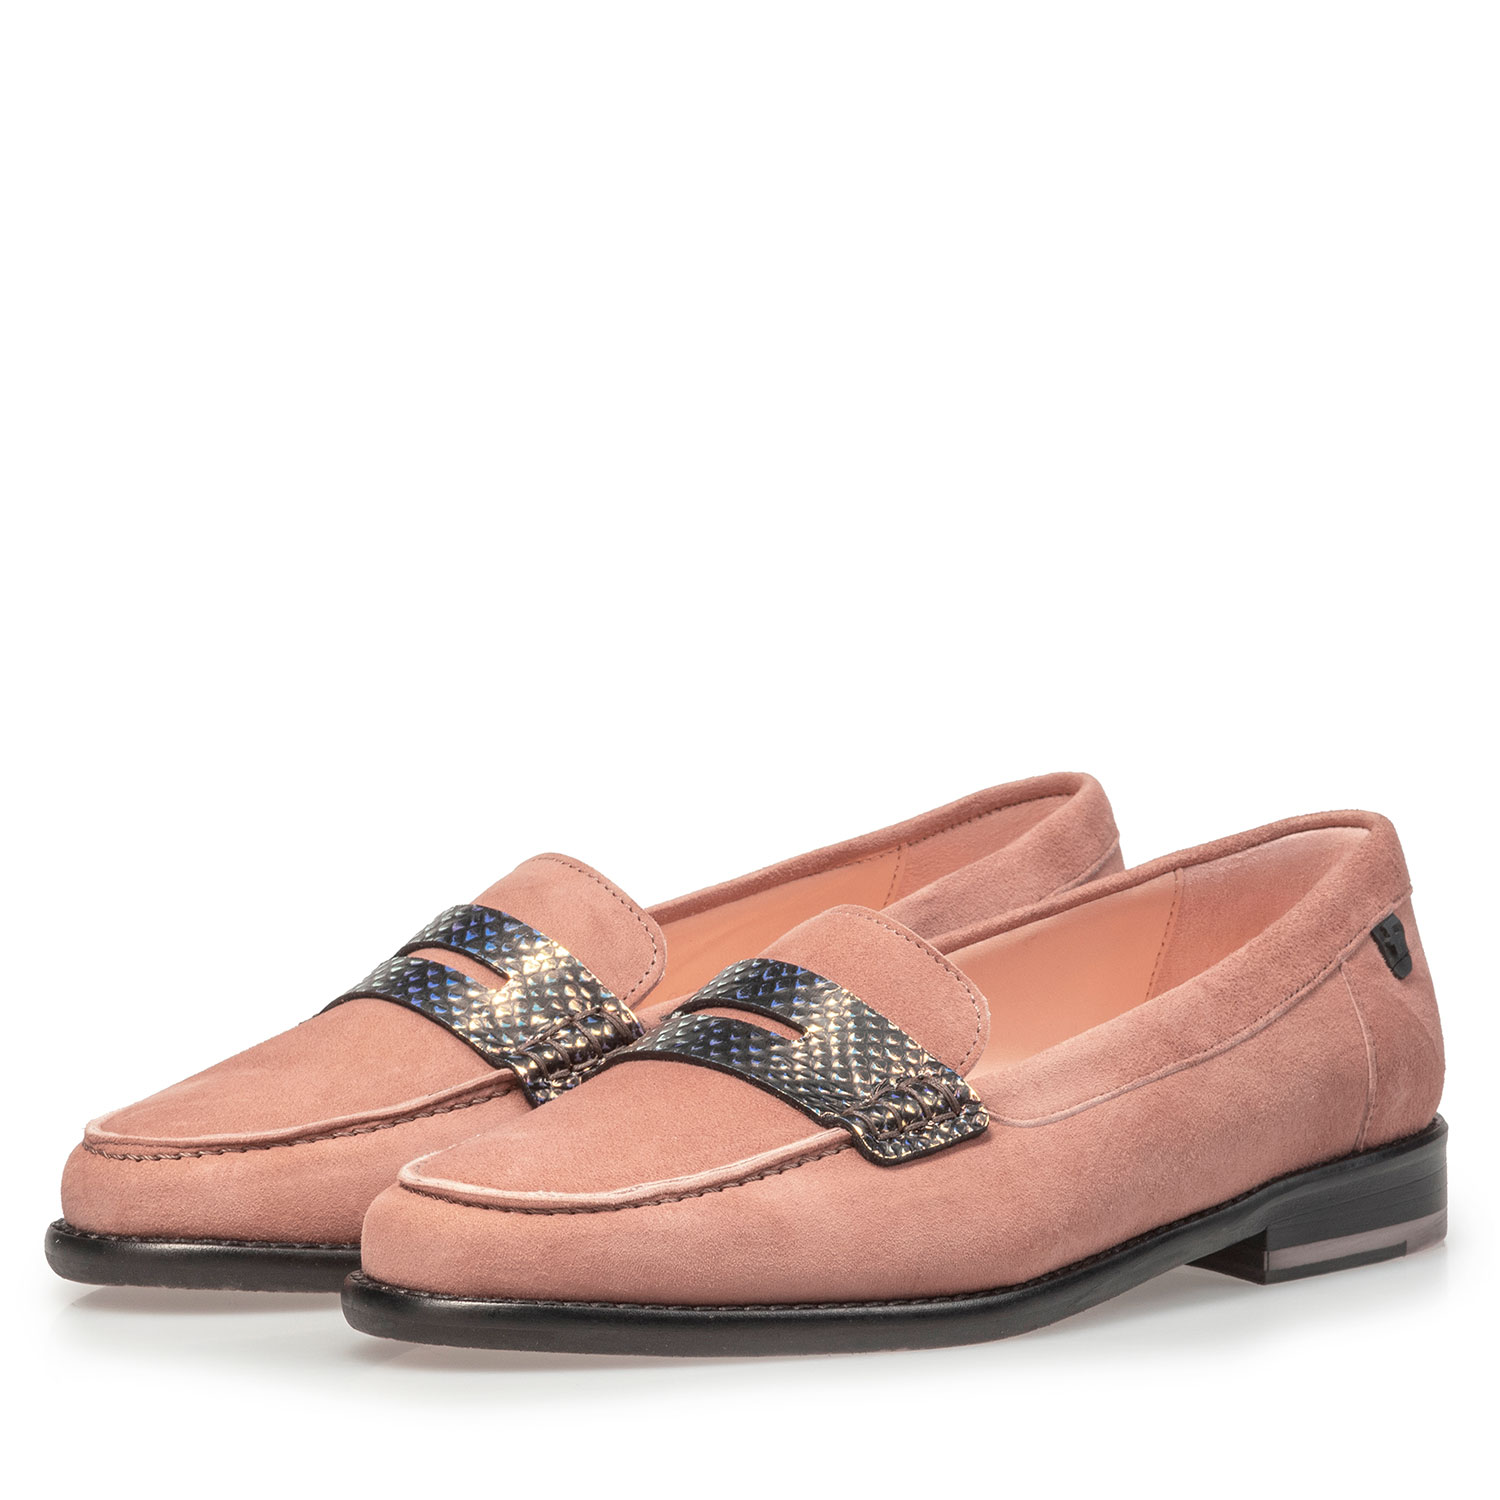 85429/00 - Pink suede leather loafer